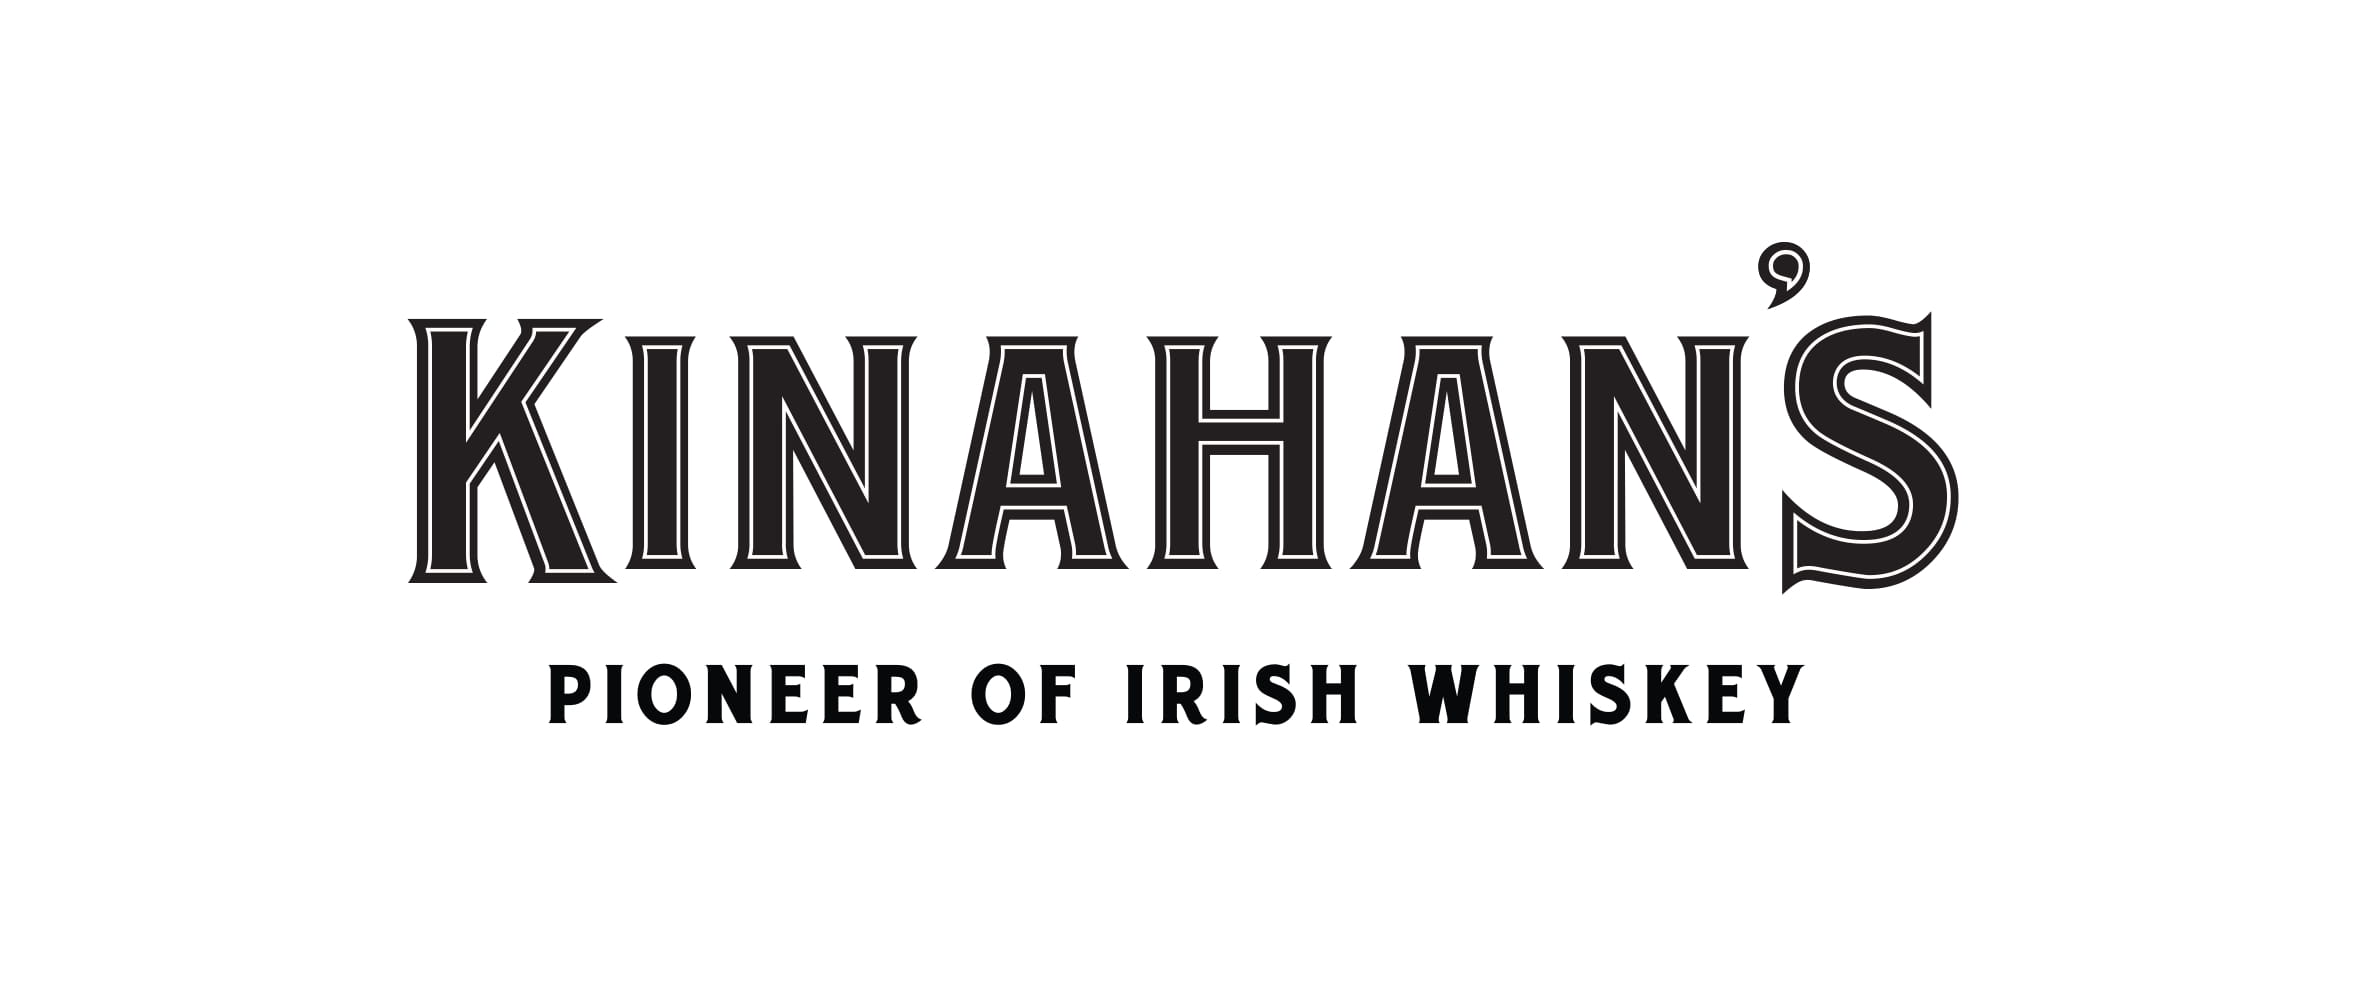 Kinahans Ireland Whiskey Limited logotype